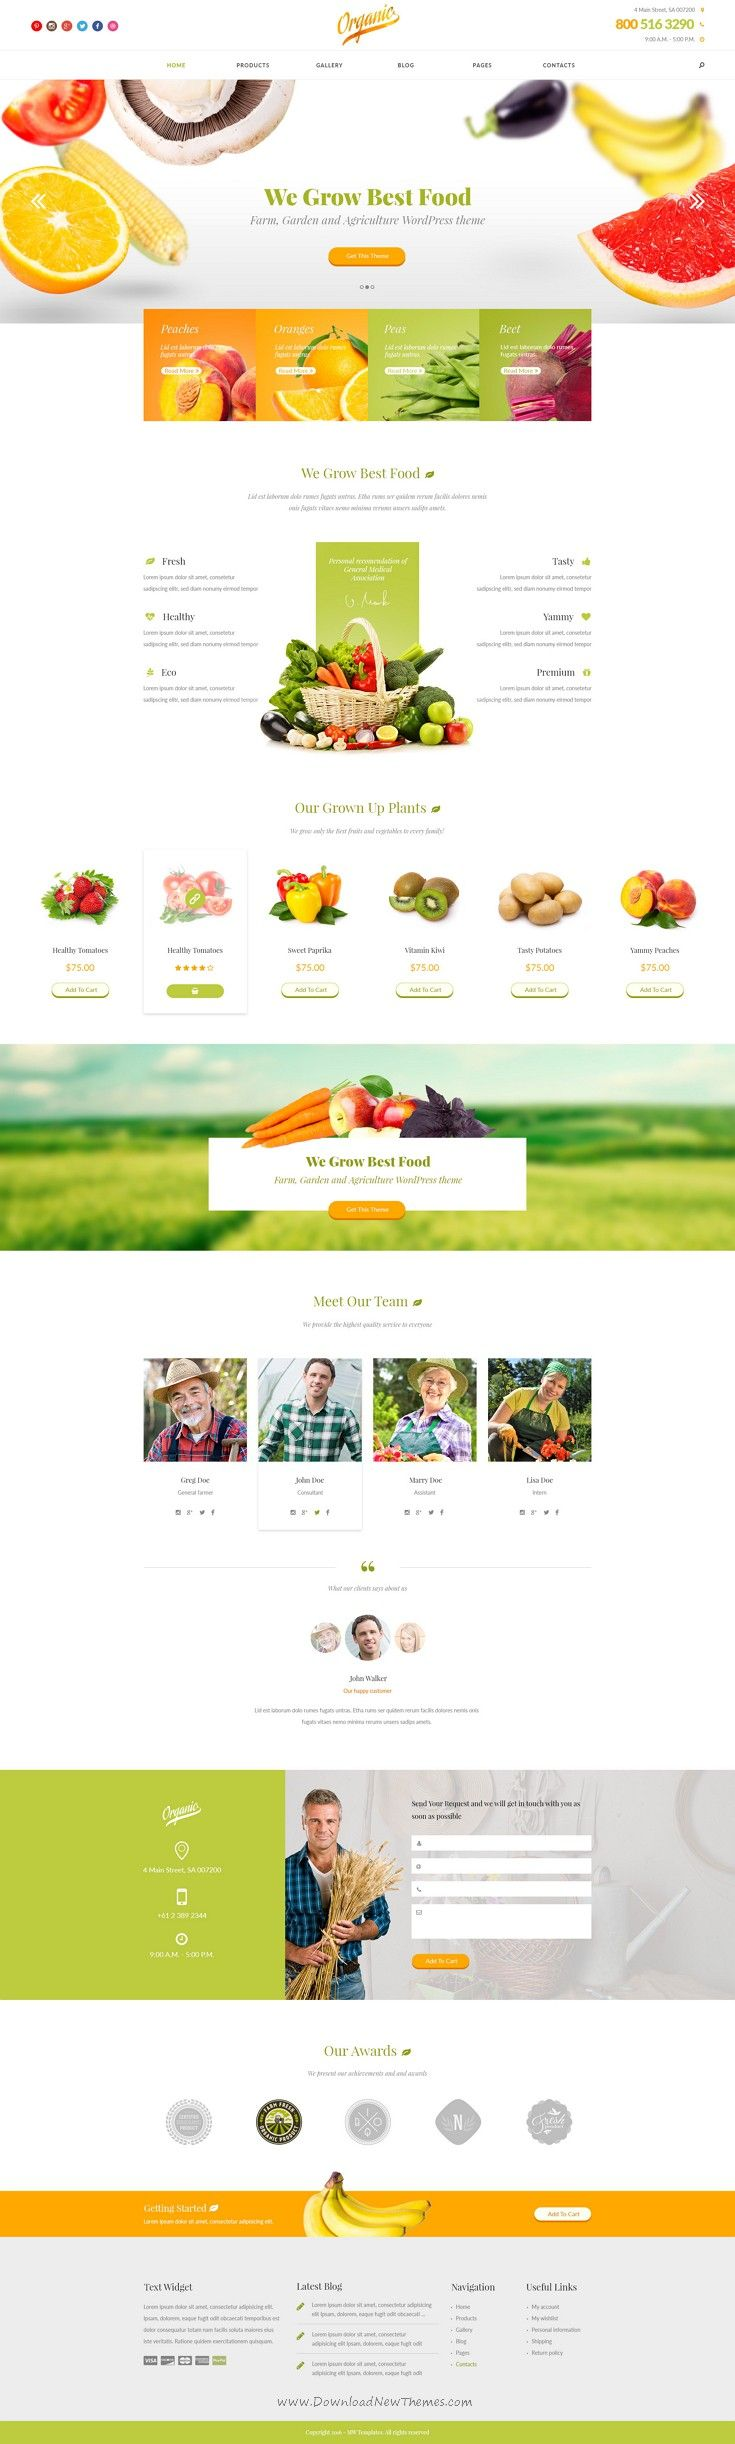 Organic is a bright and eye catching design for agriculture topic. This #PSD theme can be used for small farm #website, #organic food store or market.